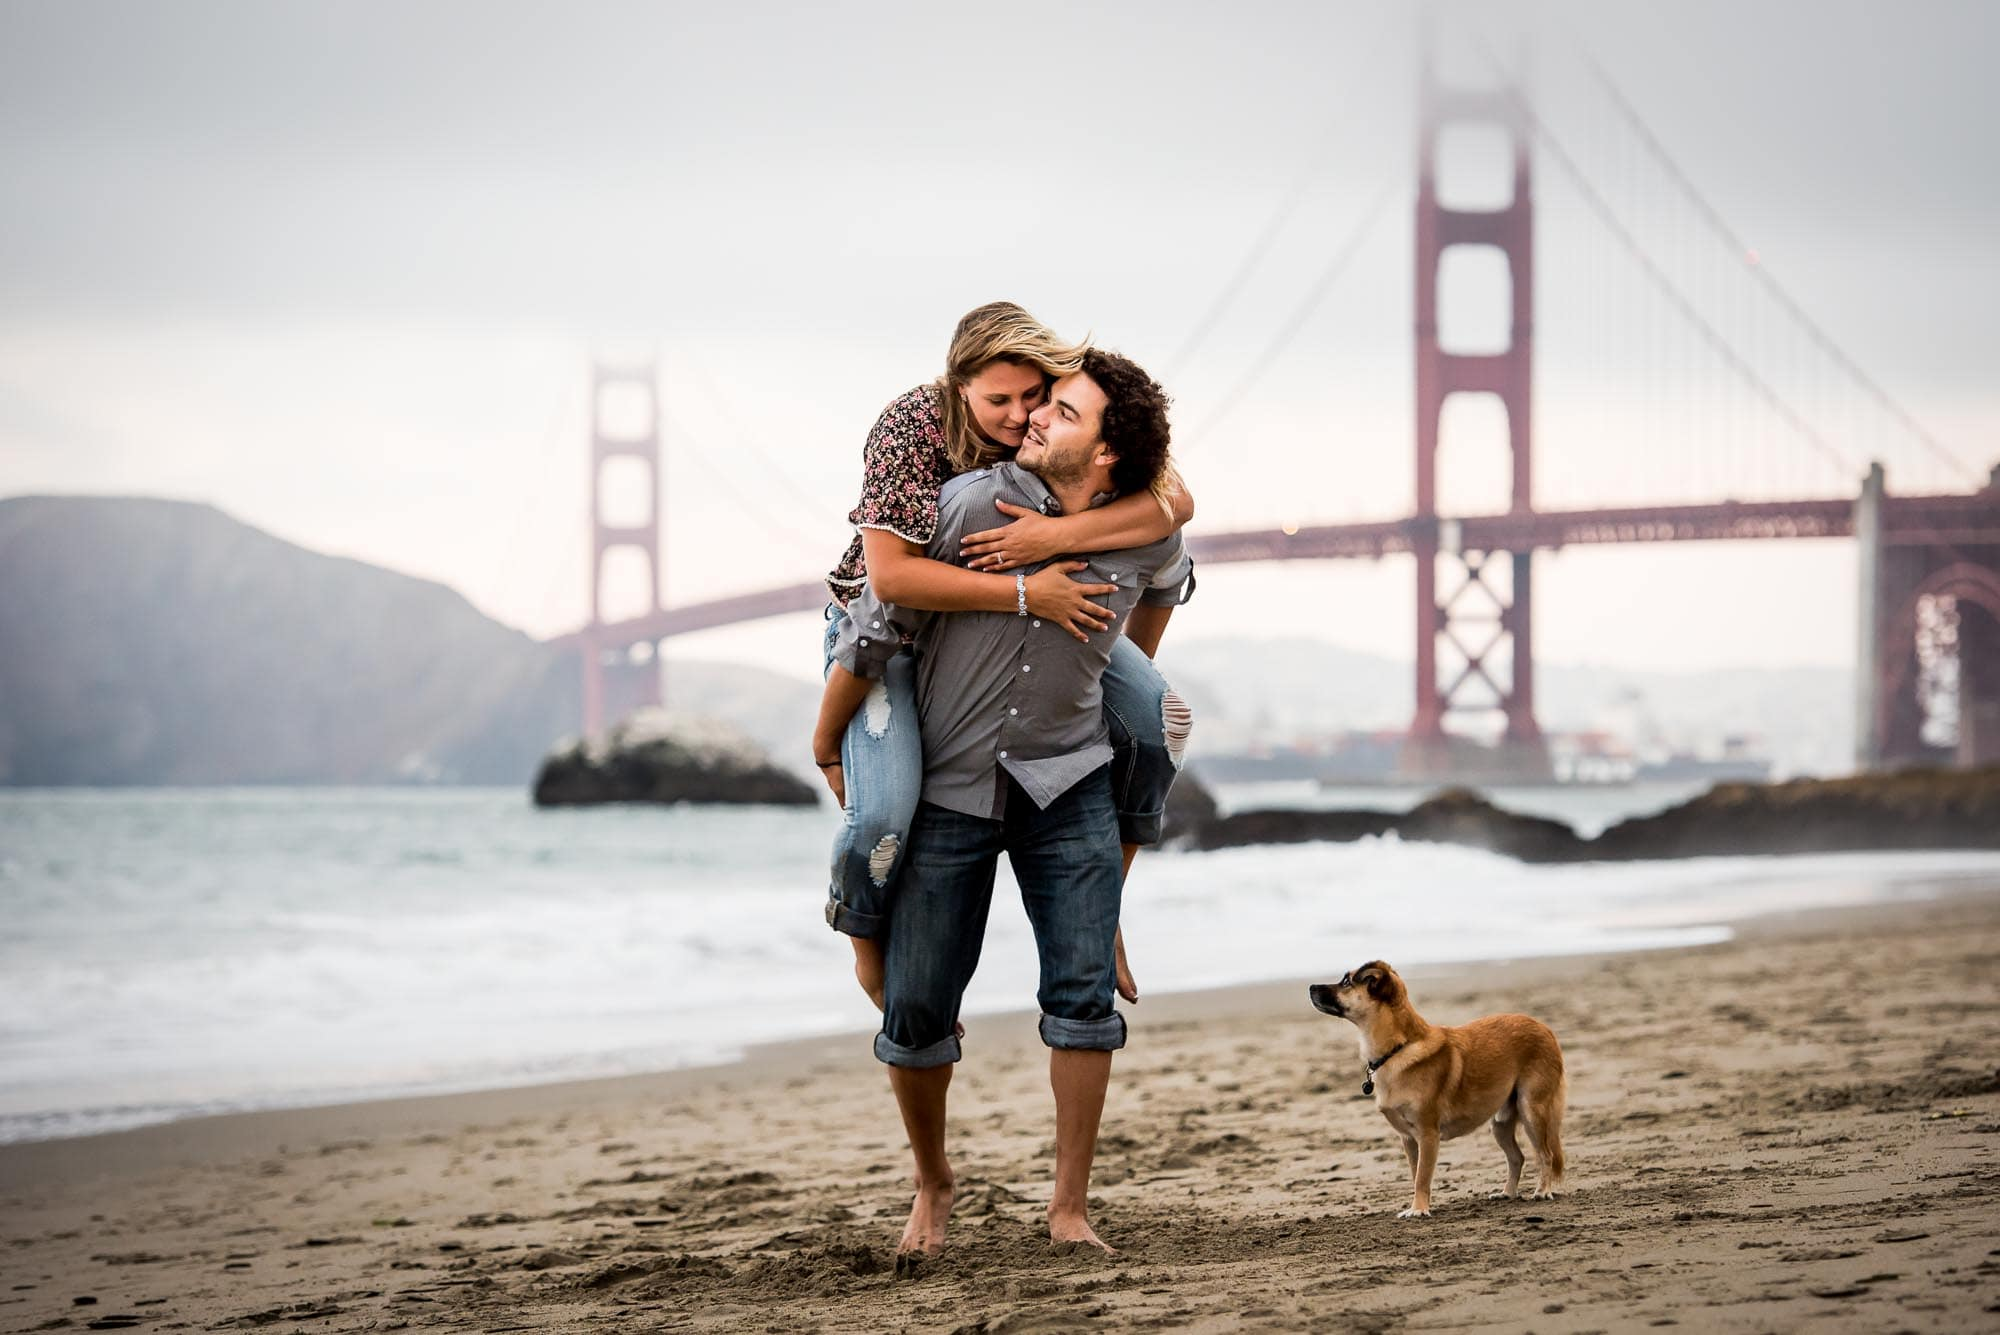 Engagement photo at Baker Beach with the Golden Gate Bridge in the background